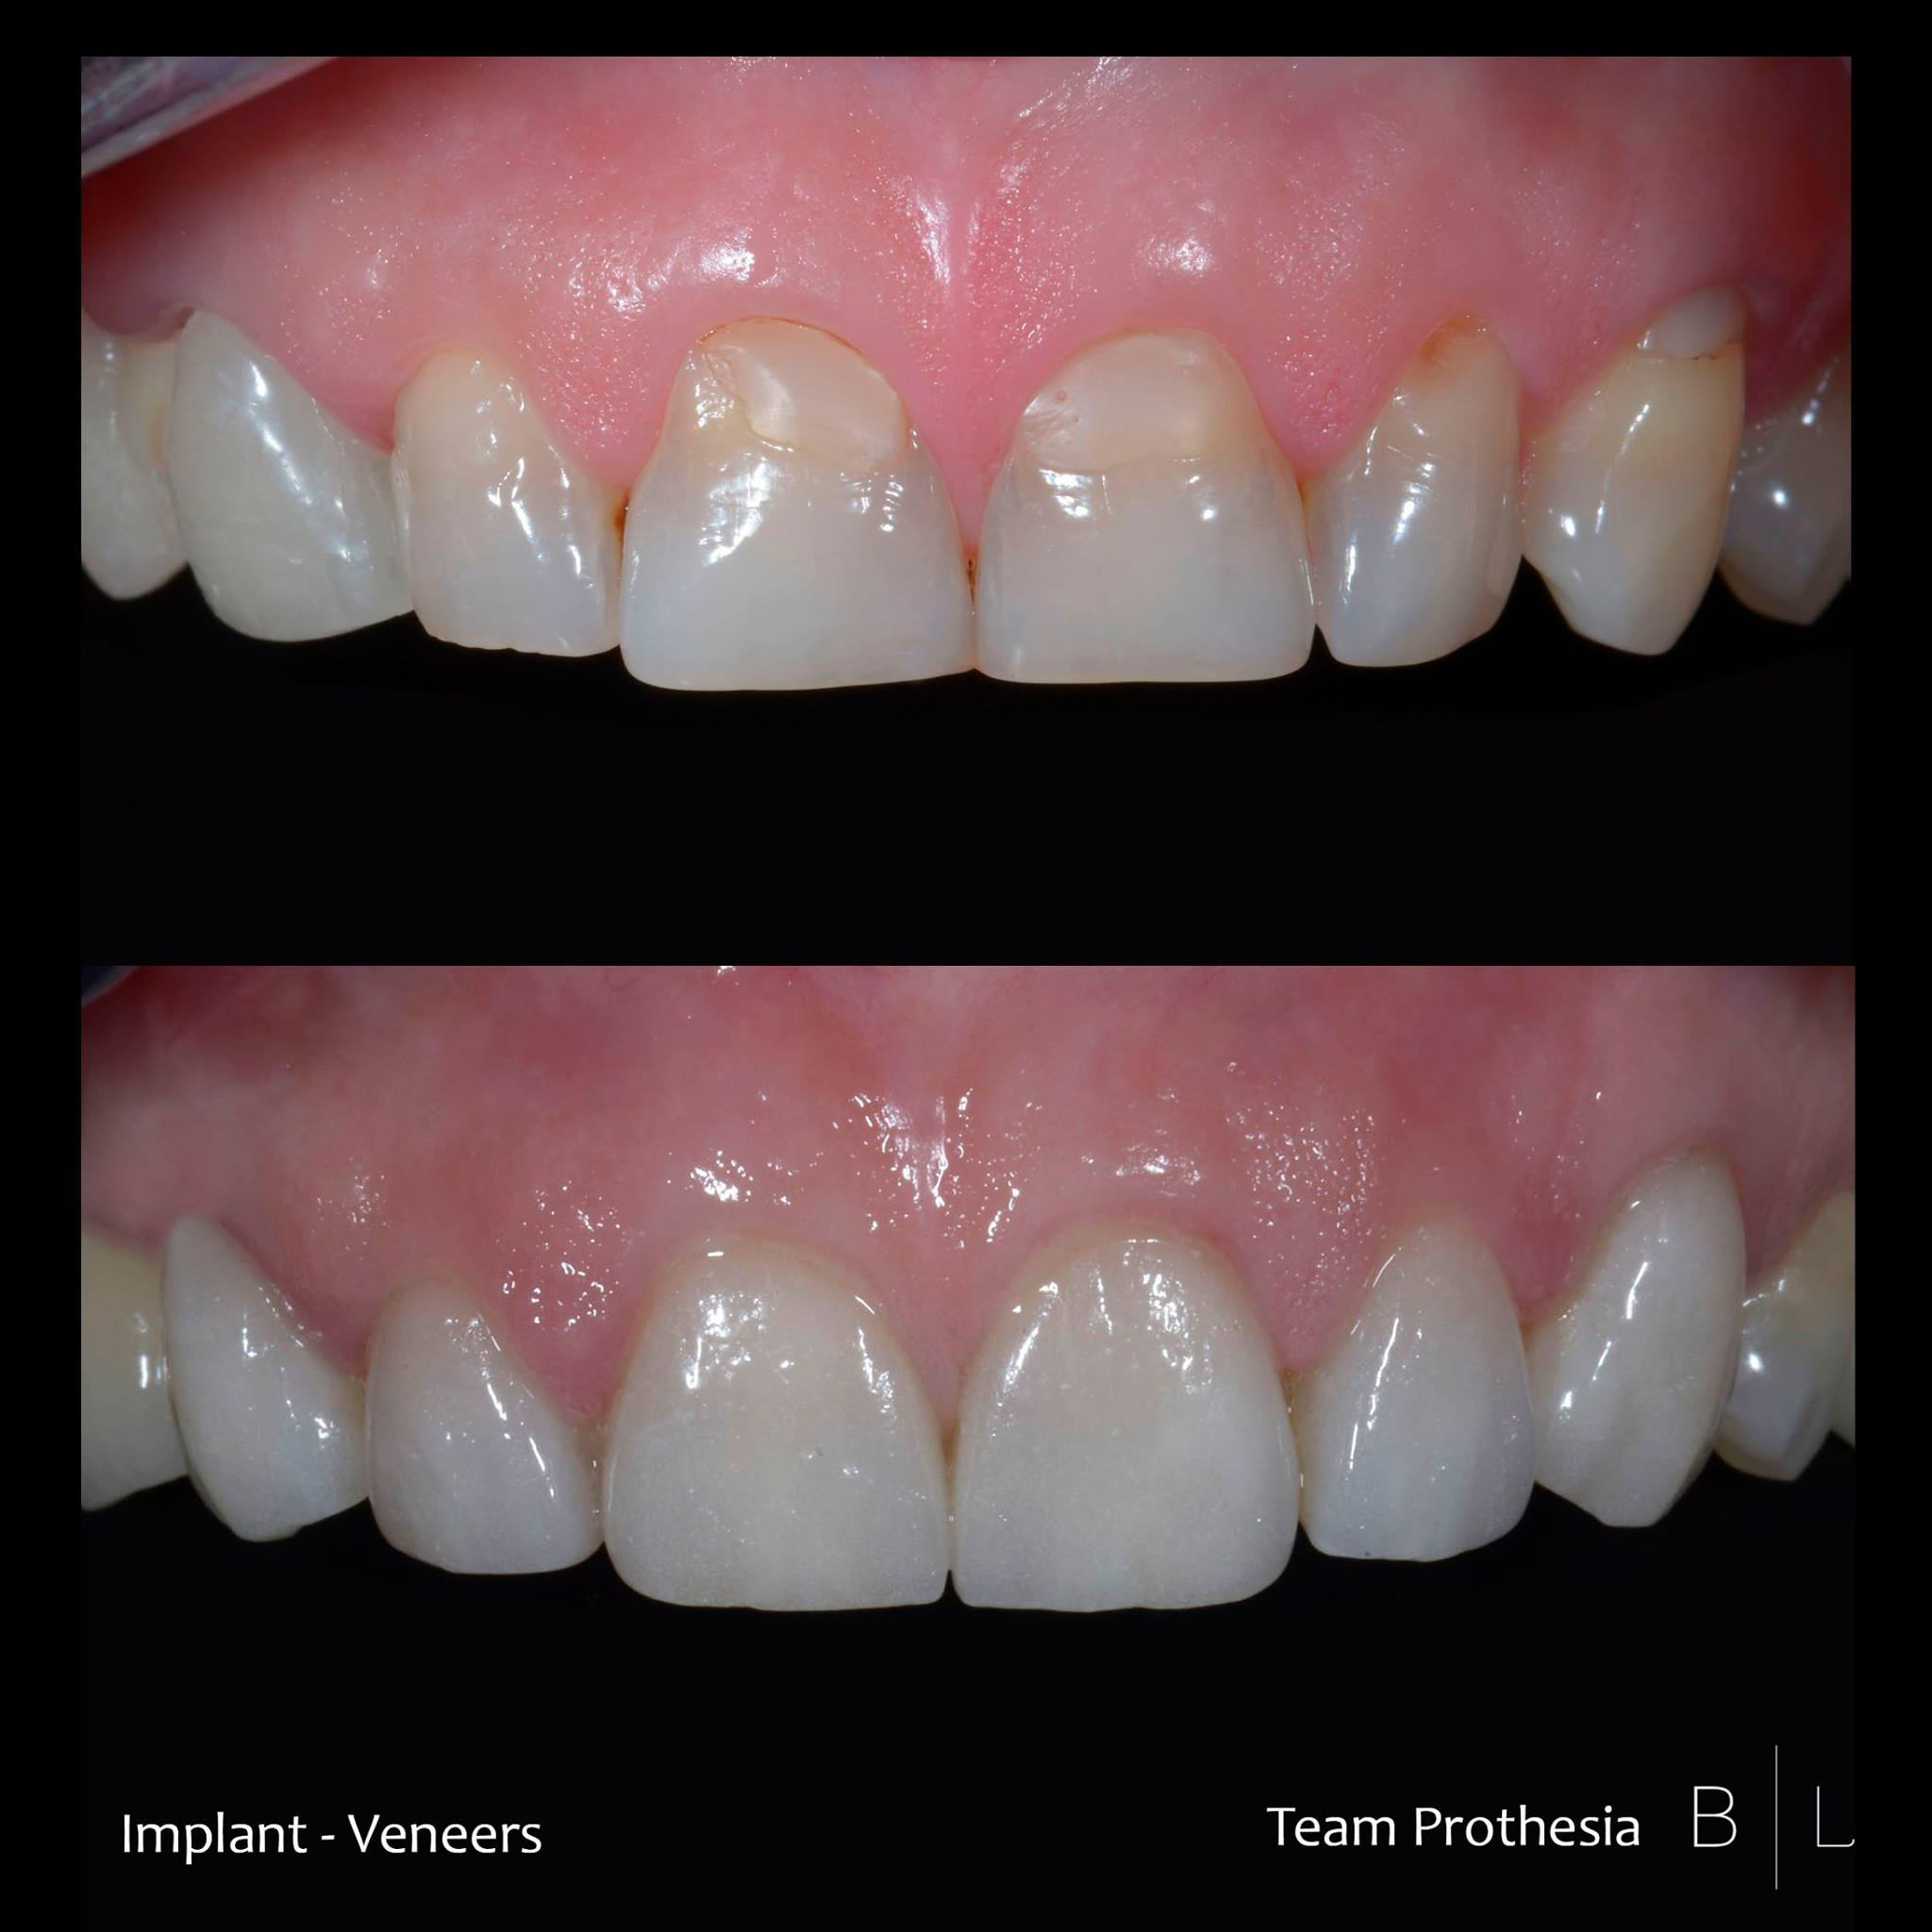 veneers-implant-antibes-dentiste